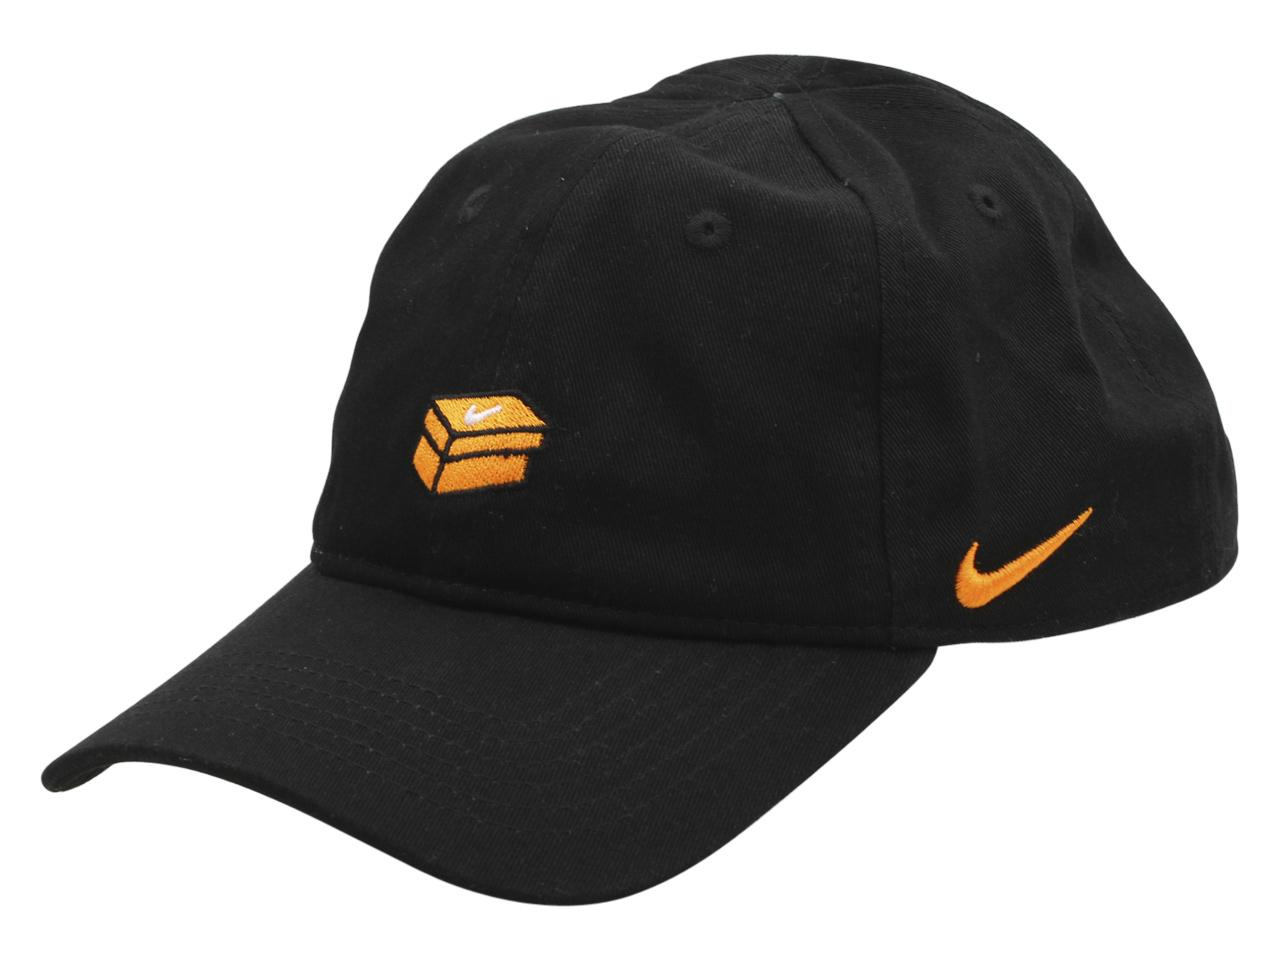 Nike Toddler/Little Kid's Swoosh Patch Strapback Cotton Baseball Cap Hat